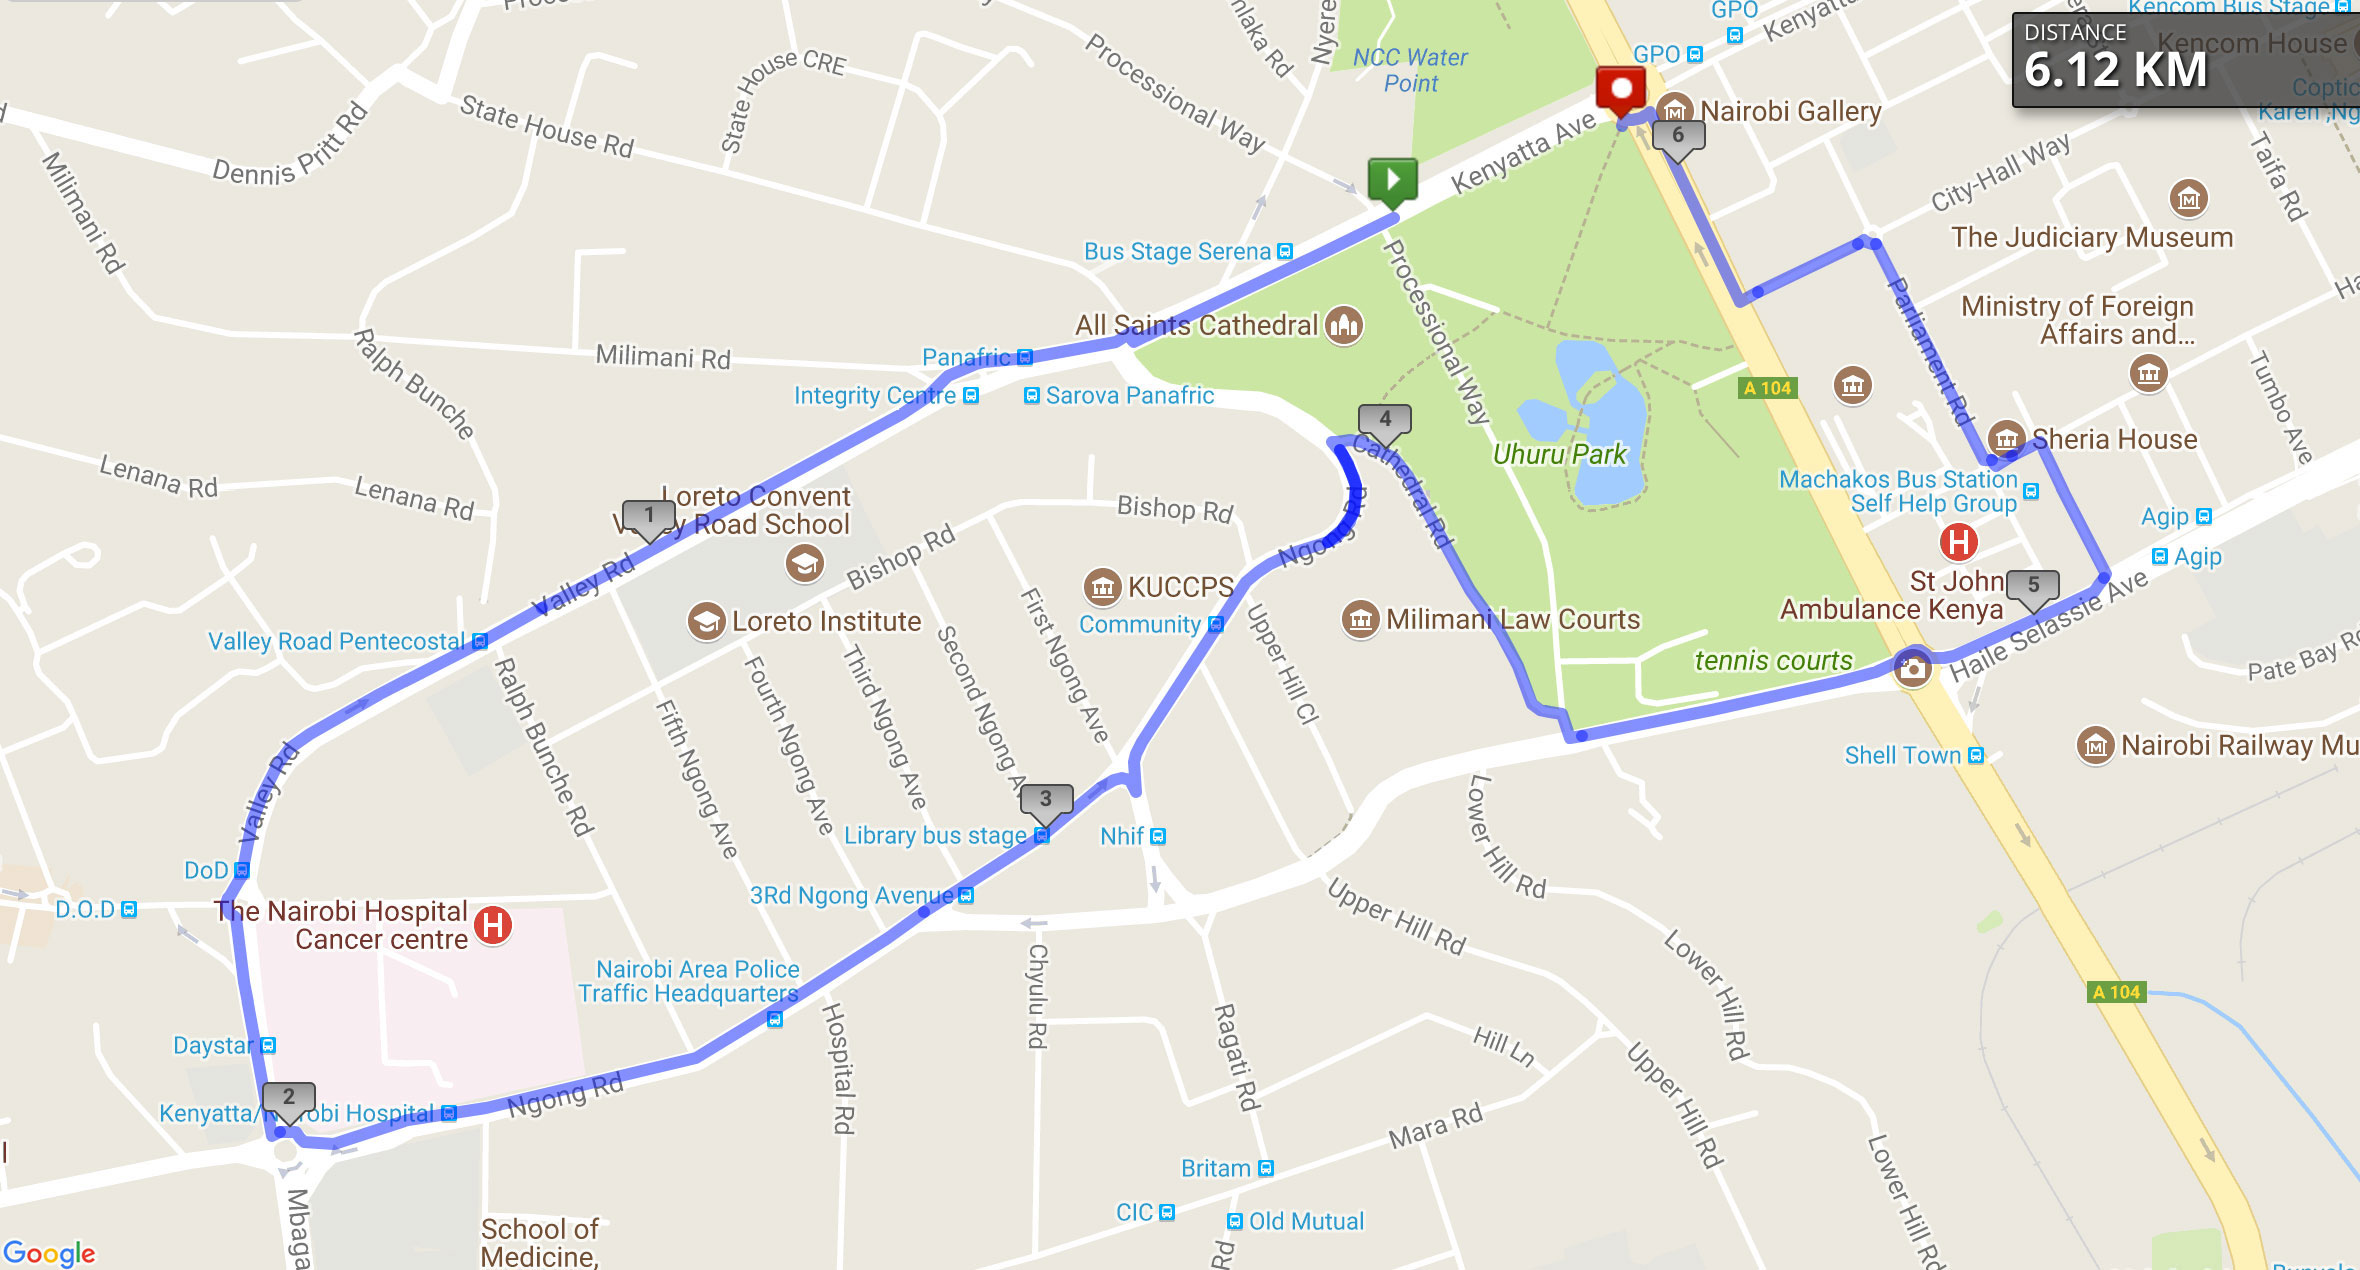 Integrity walk route image